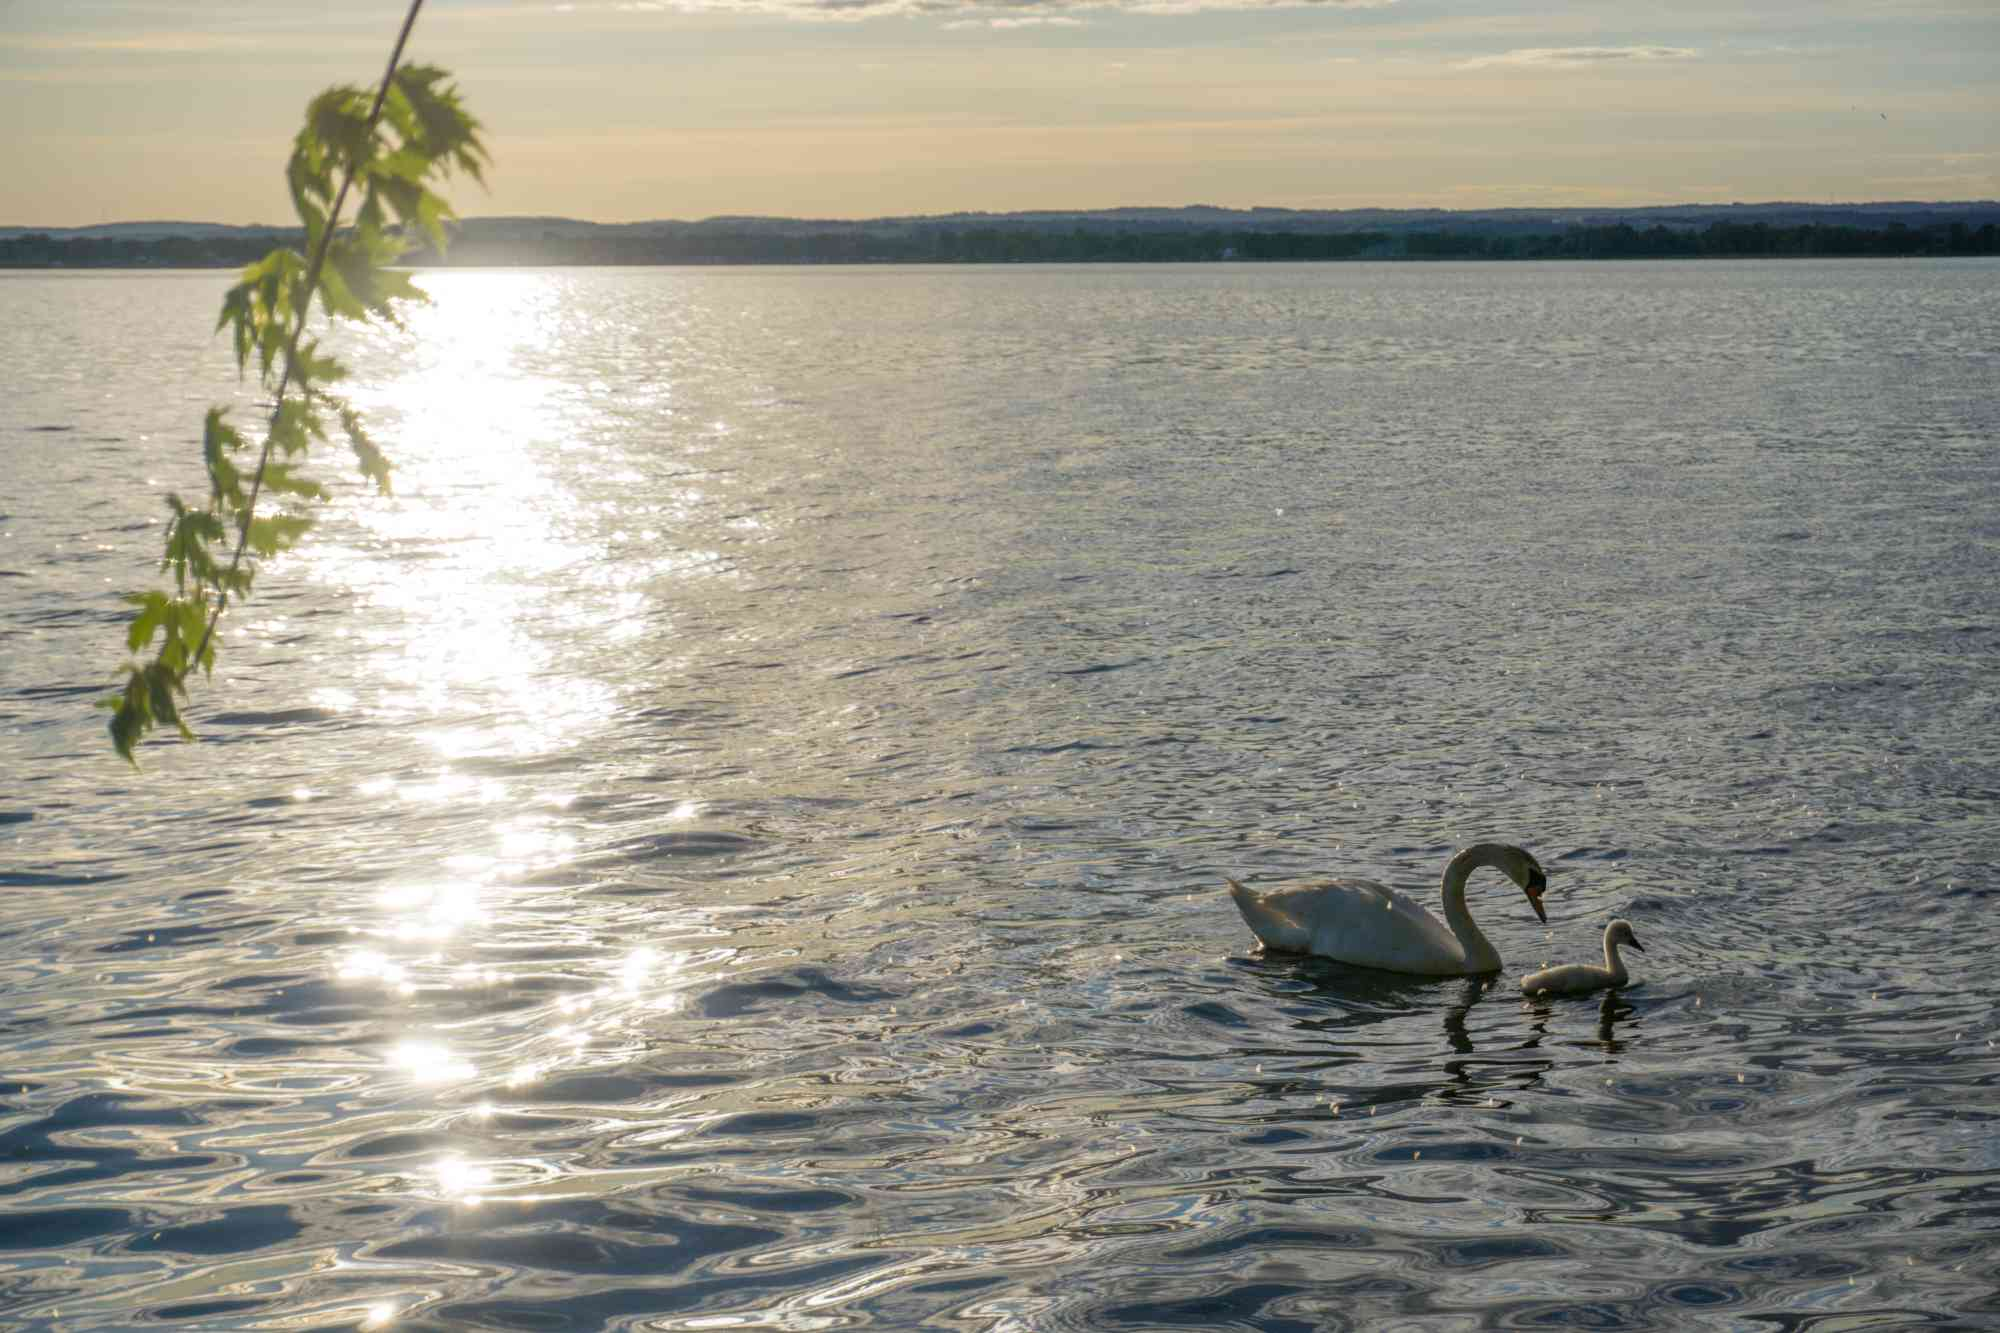 Swan and baby swan swimming in Weller's Bay at The Empty Nest in Prince Edward County